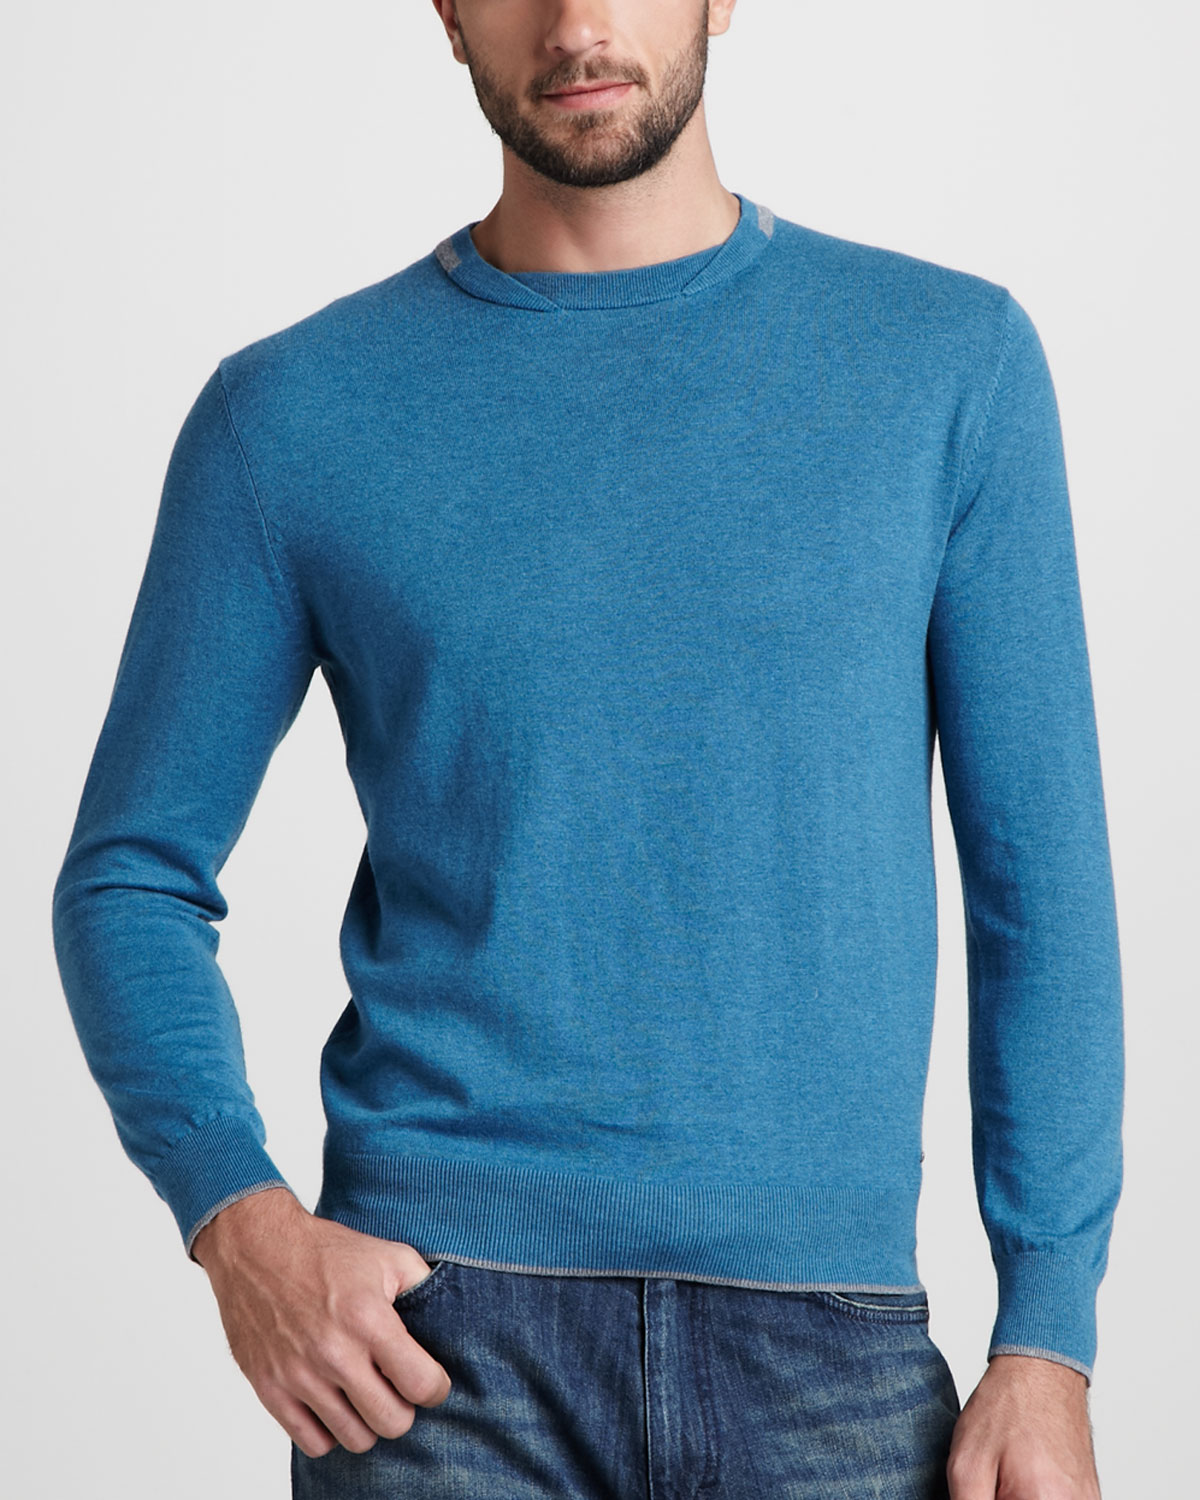 abbe1154d4080 Lyst - Zegna Sport Crewneck Knit Sweater Teal in Blue for Men